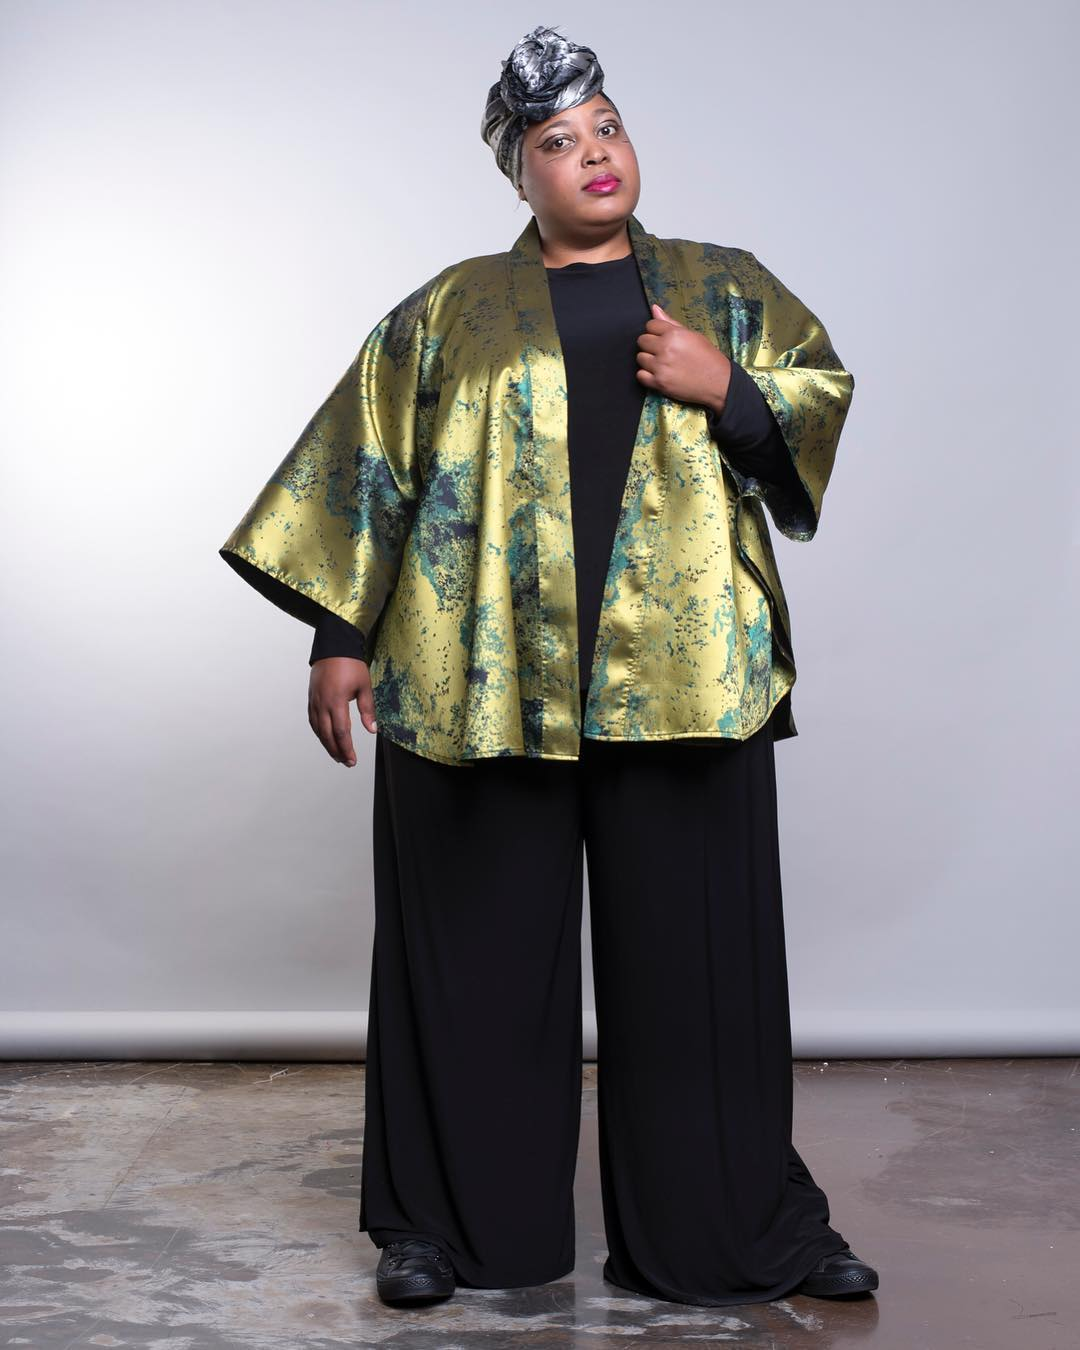 Zola Nene speaks food and journey on Wedding Bashers